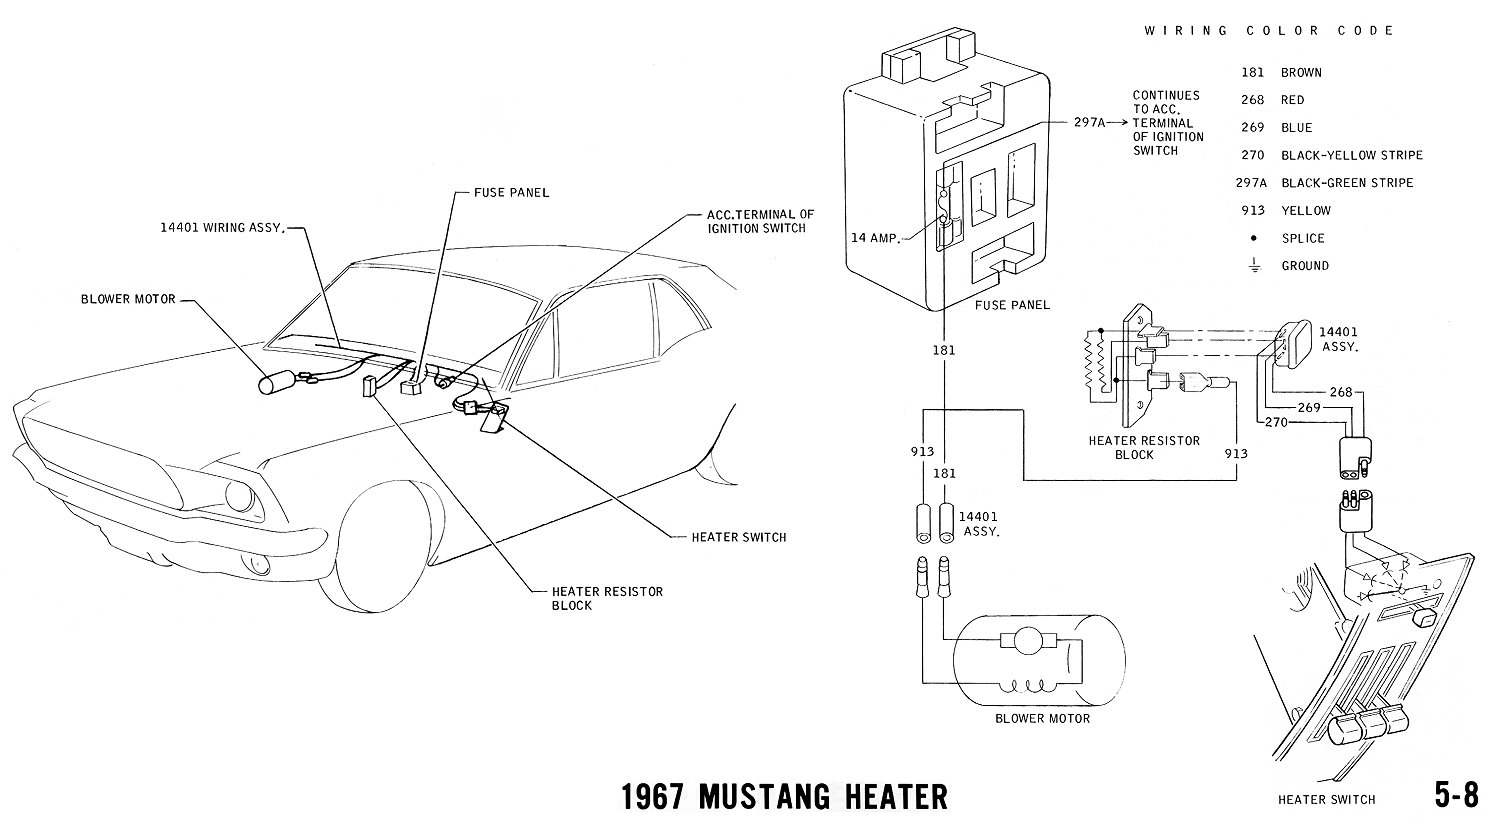 67heater 1967 mustang wiring and vacuum diagrams average joe restoration 1966 mustang fuse box at n-0.co